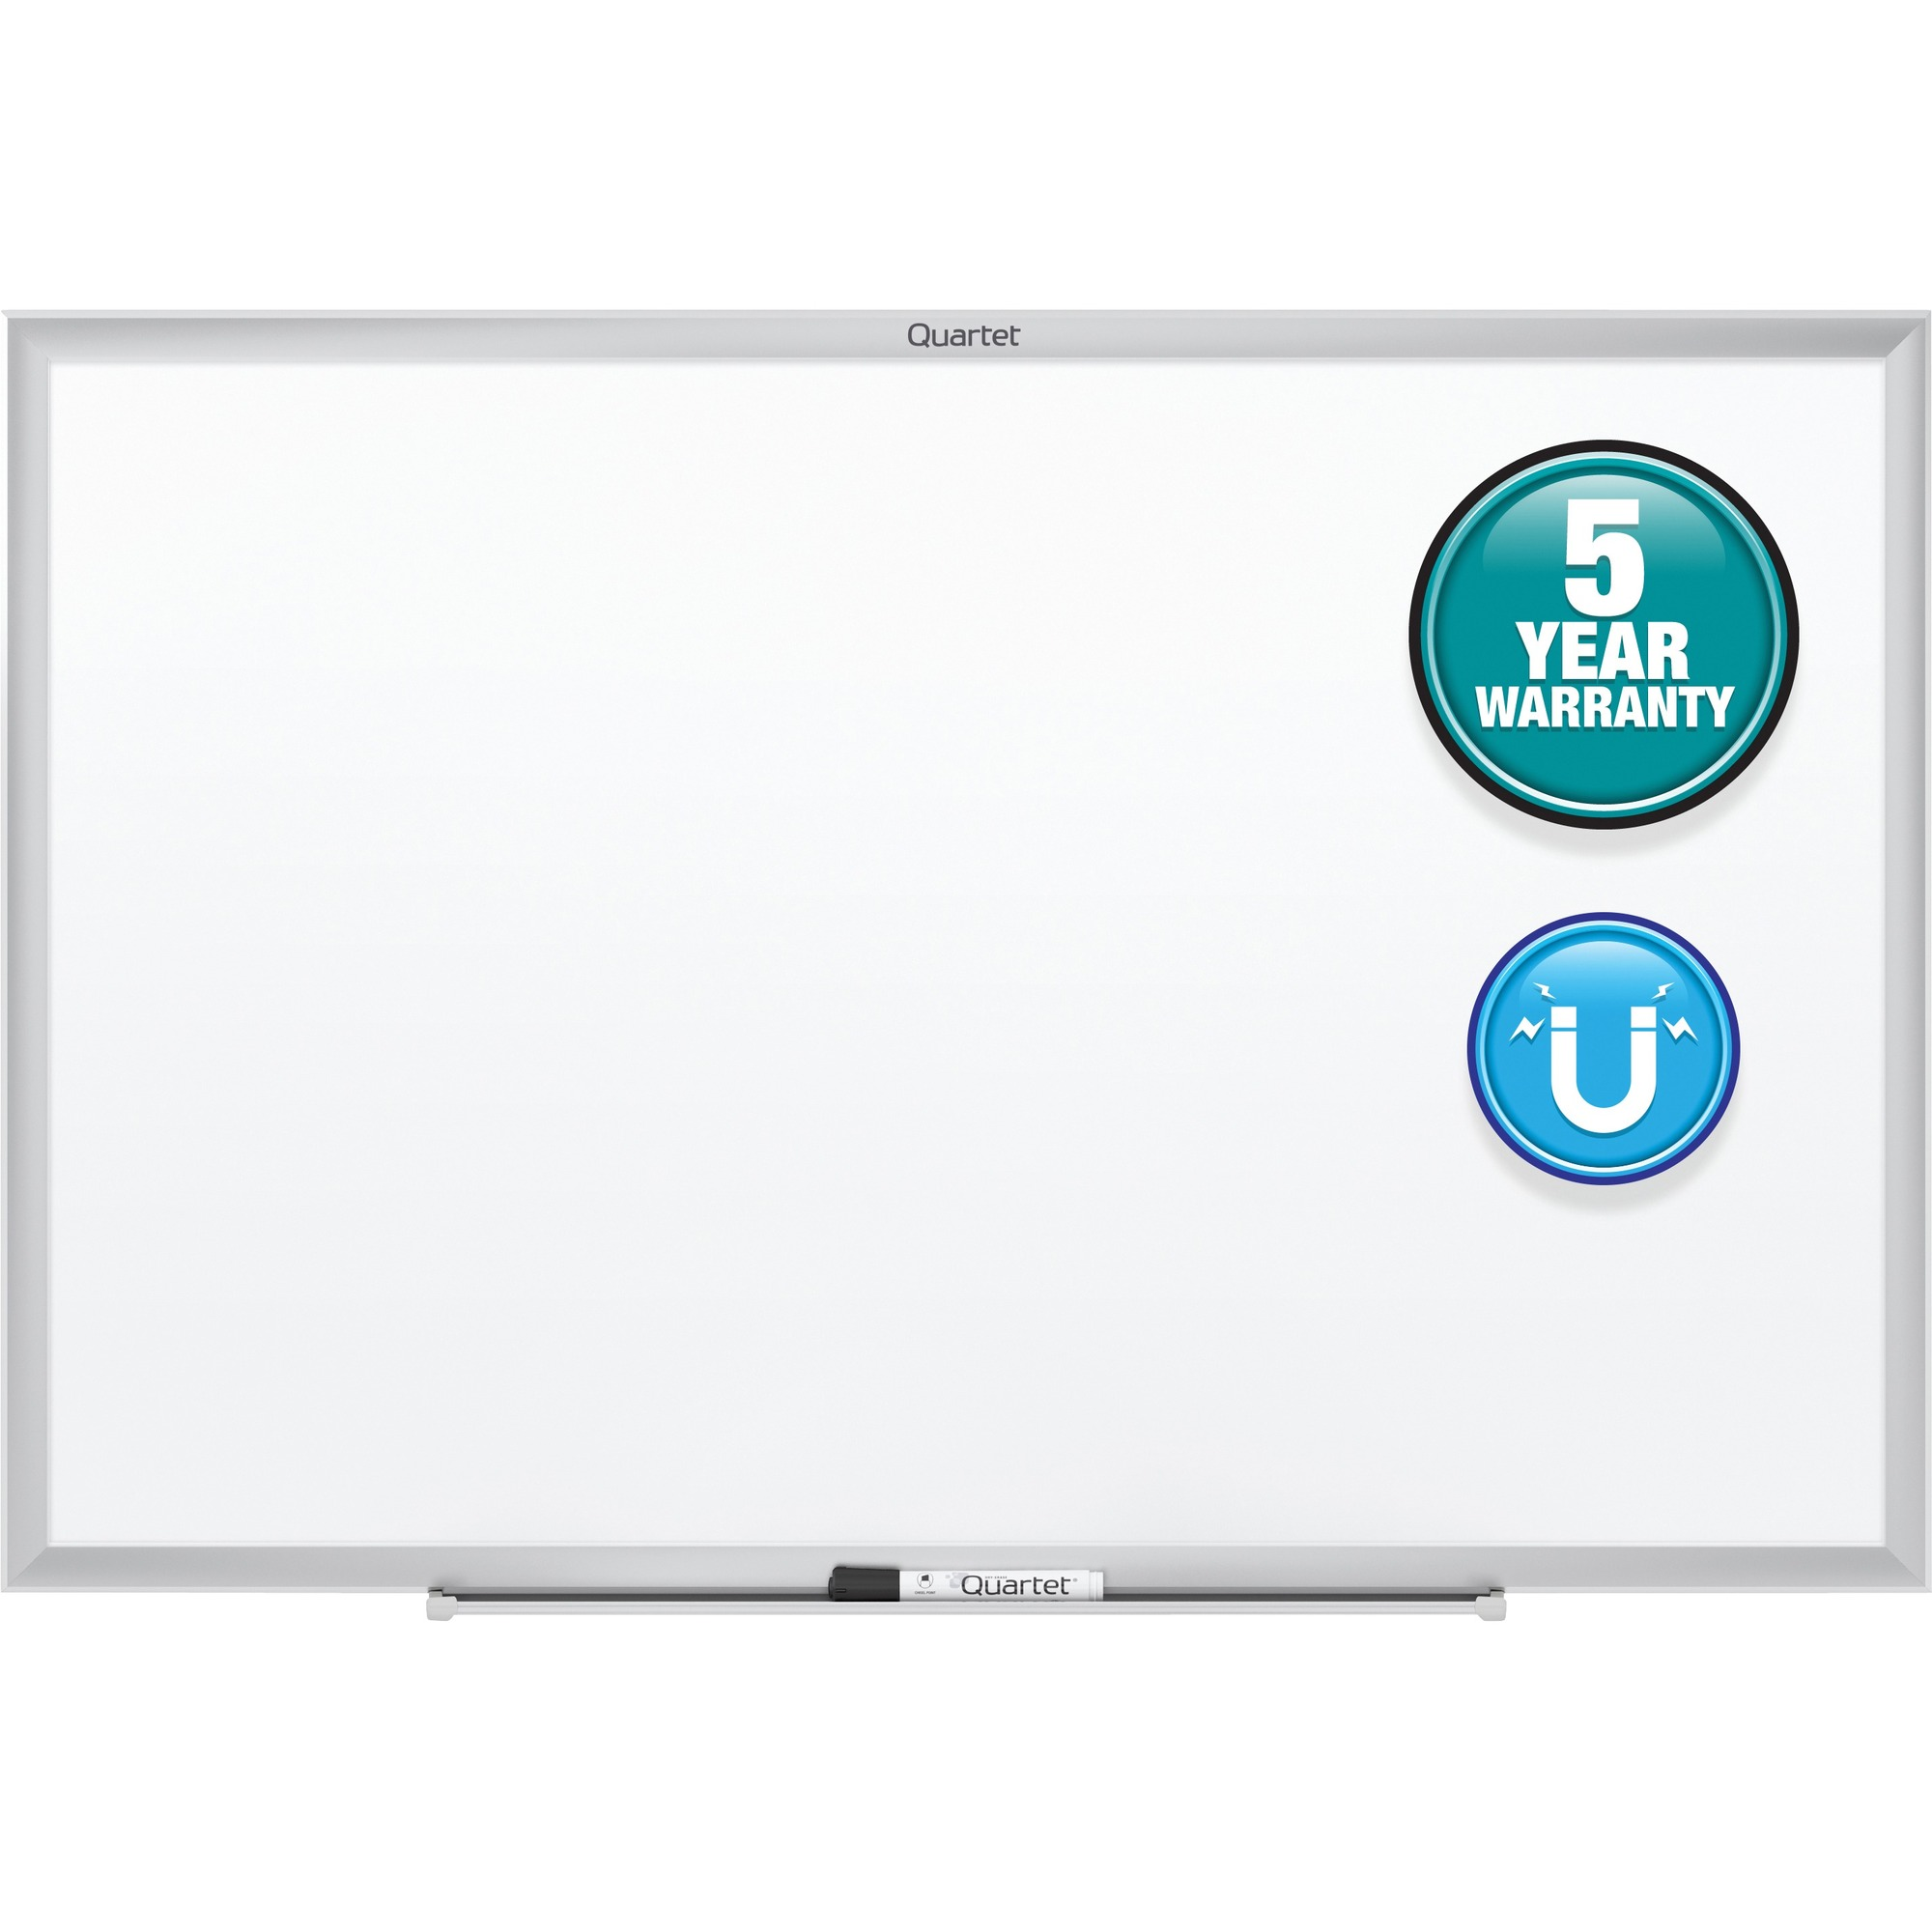 Acco Brands Corporation Quartet® Classic Magnetic Whiteboard - 60 (5 Ft) Width X 36 (3 Ft) Height - White Painted Steel Surface - Silver Aluminum Frame - Horizontal/vertical - 1 Each